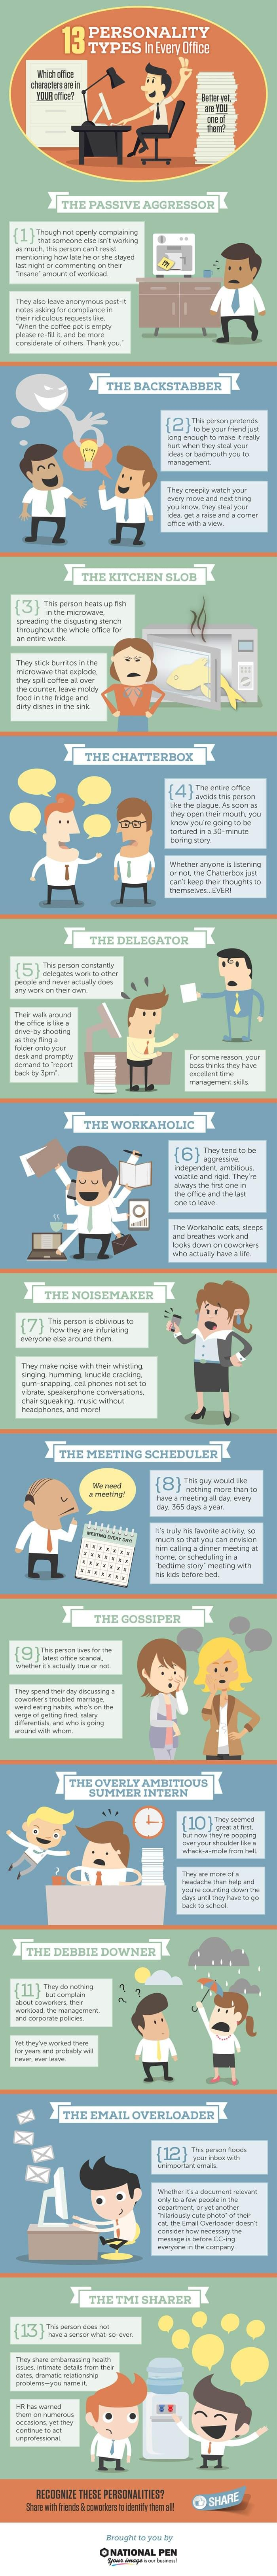 Office Personalities Infographic